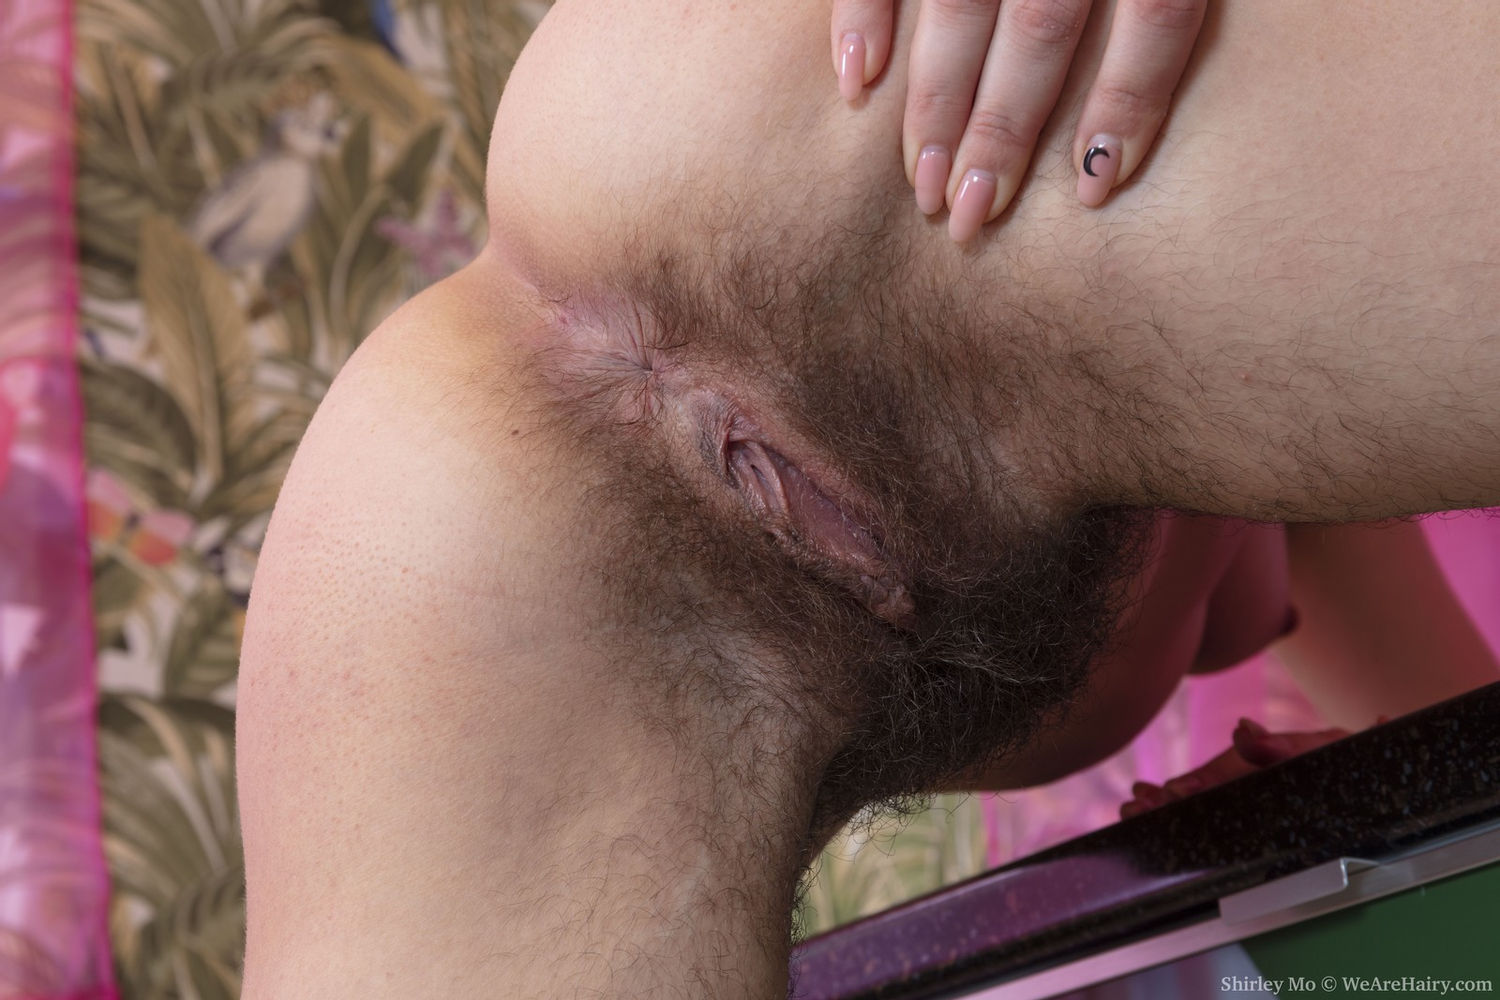 Milf pornstar Shirley Mo bushy pussy, hairy ass and thighs closeup